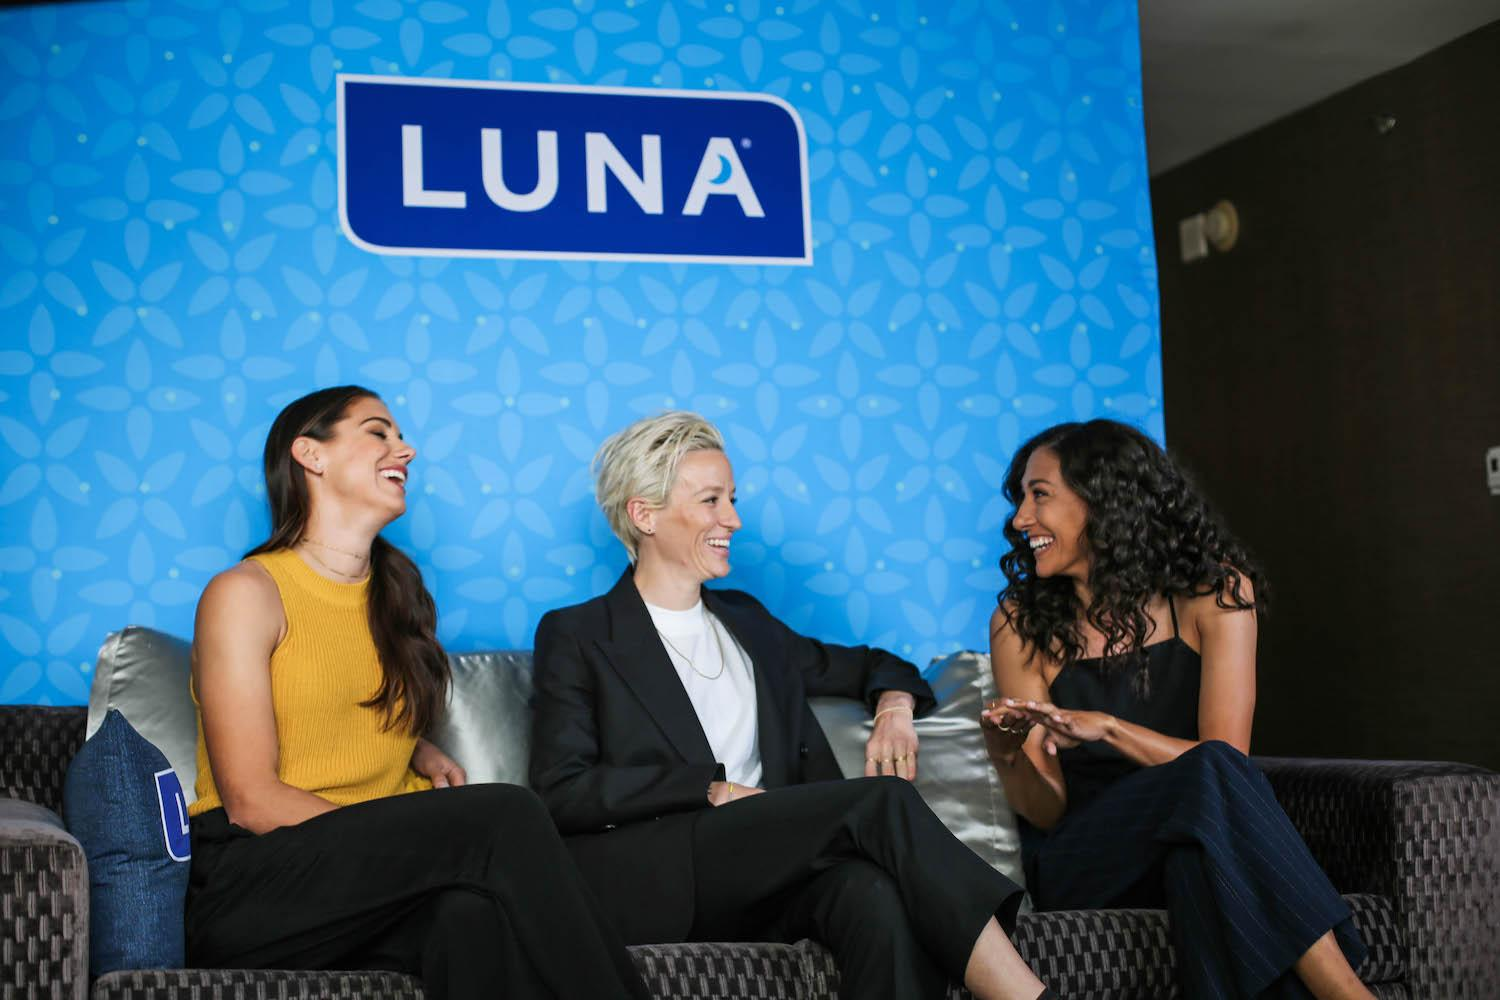 Luna Bar U.S. women's soccer players pay equality brands taking stands activism